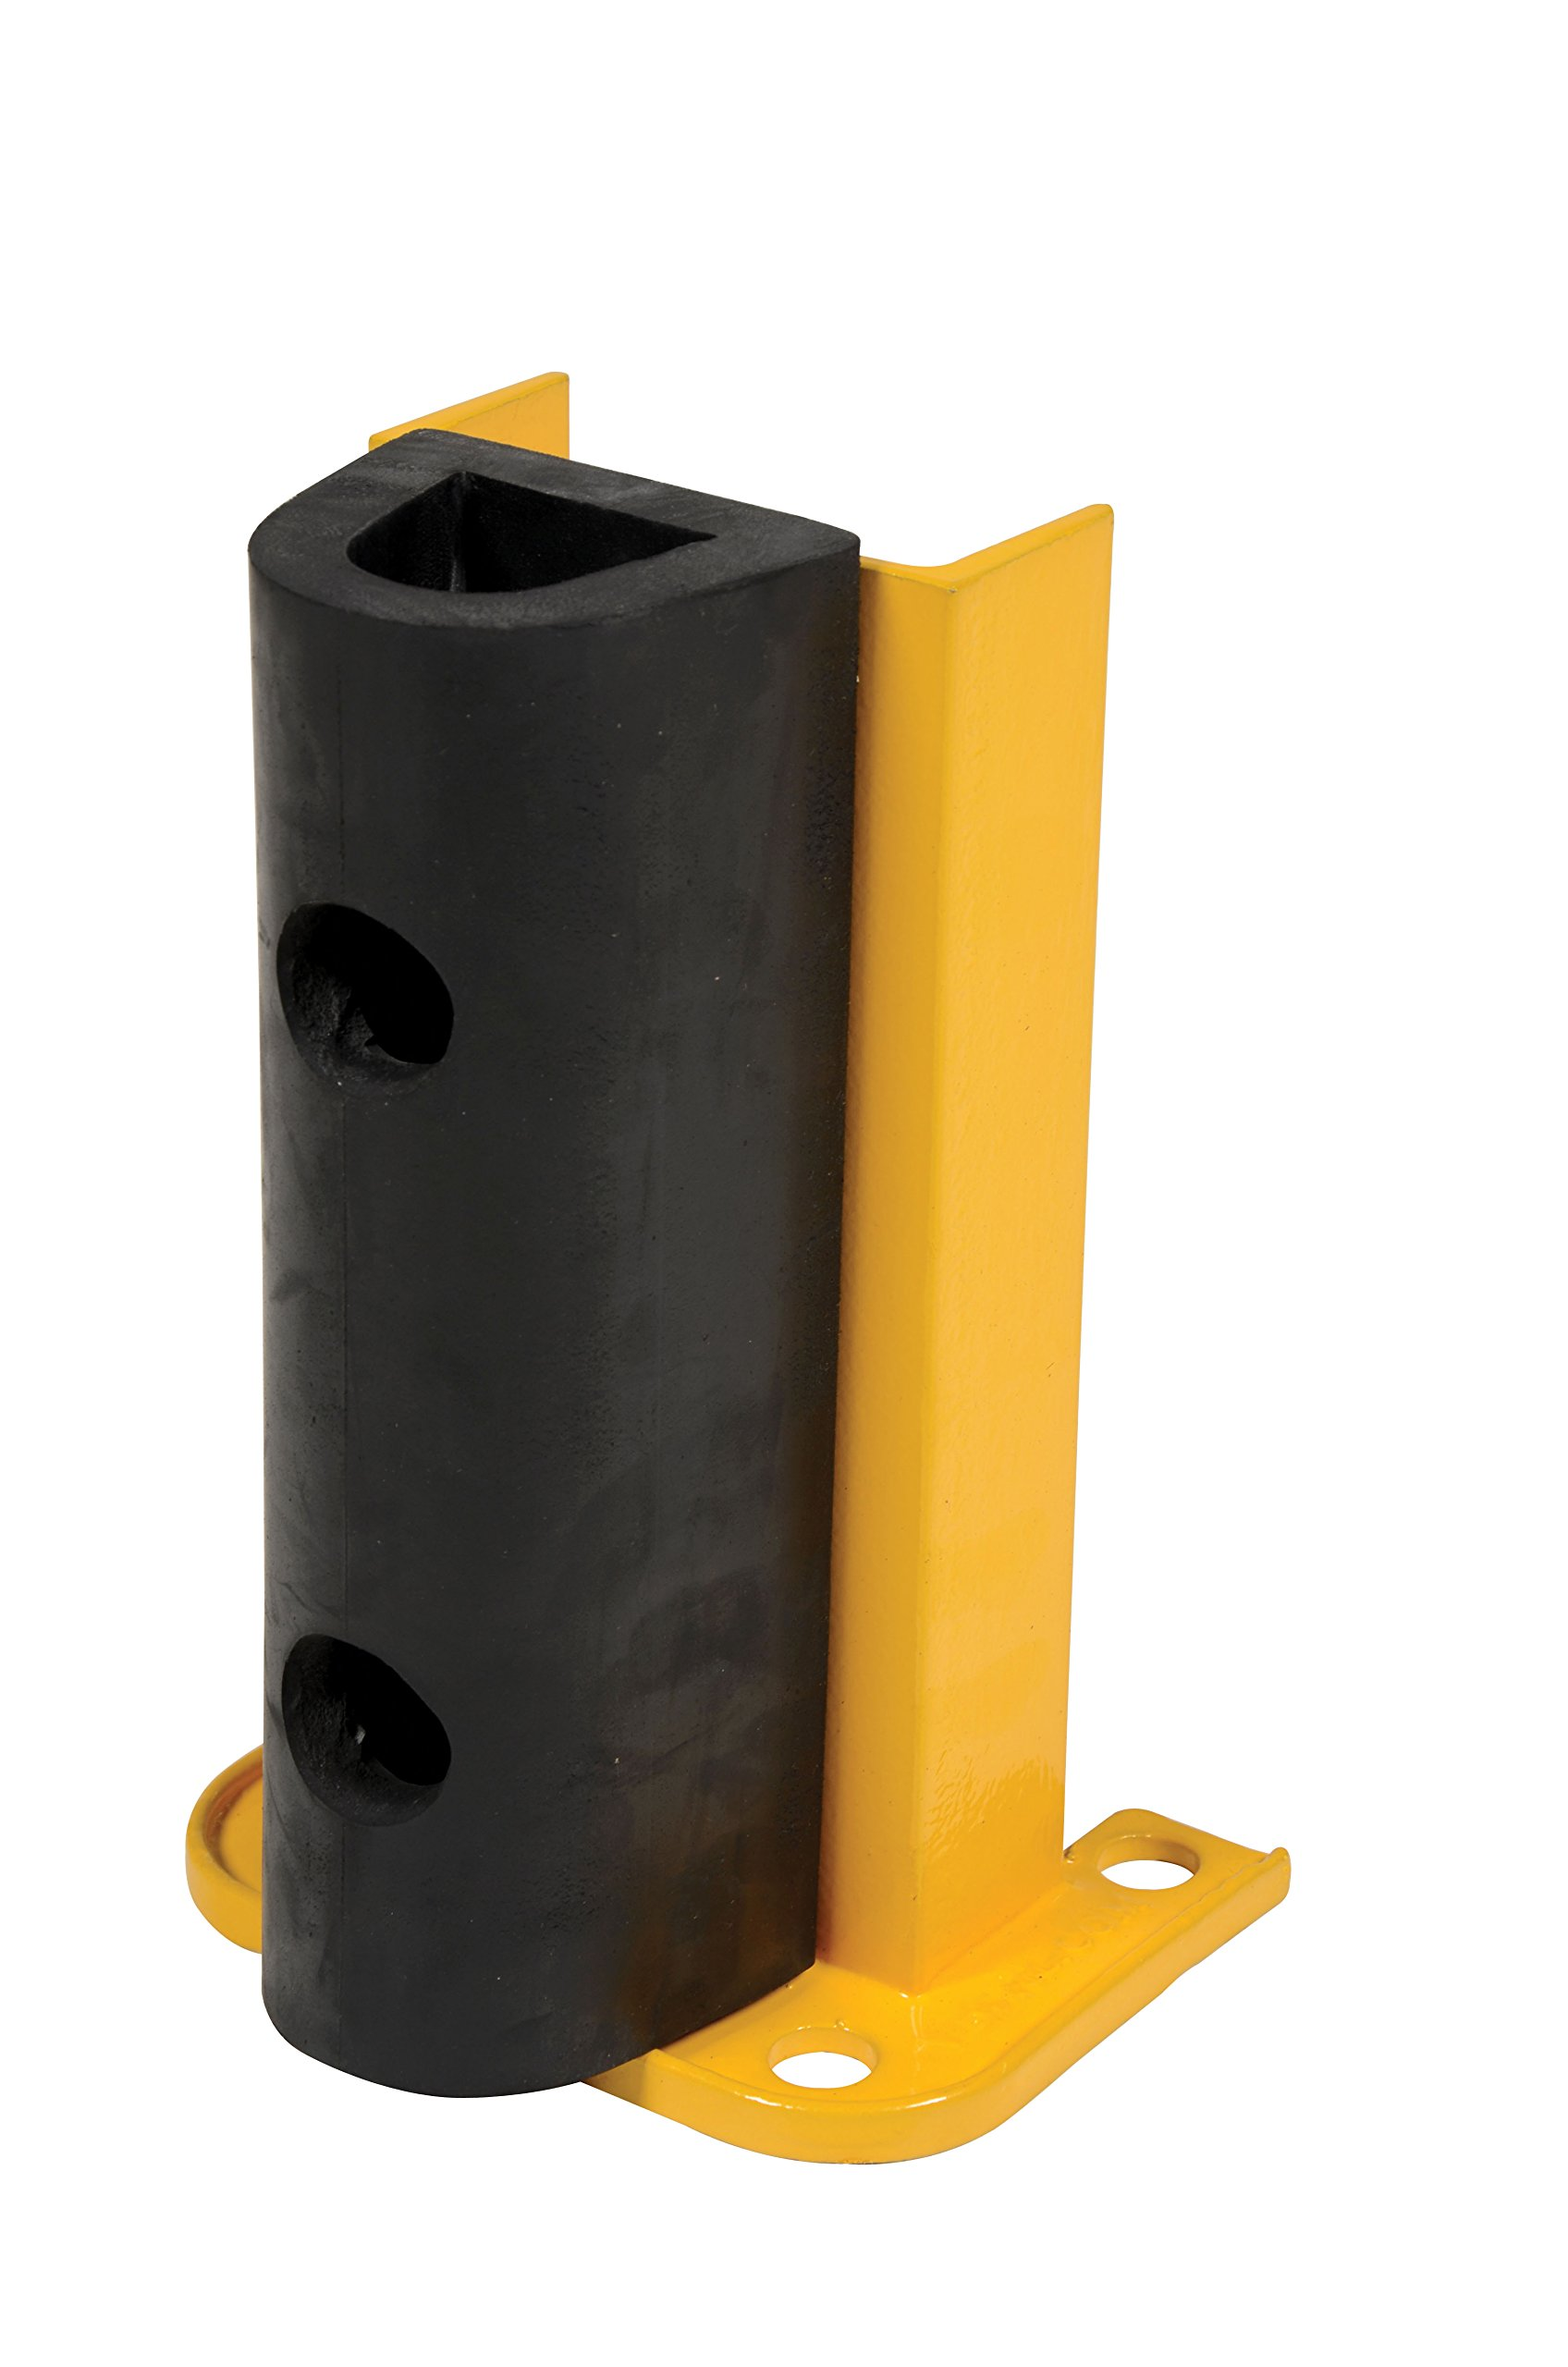 Vestil G6-12-B Structural Steel Rack Guard with Rubber Bumper, 4 Mounting Holes, 12-1/4'' Height, Base Measures 8-1/16'' x 6'', Safety Yellow